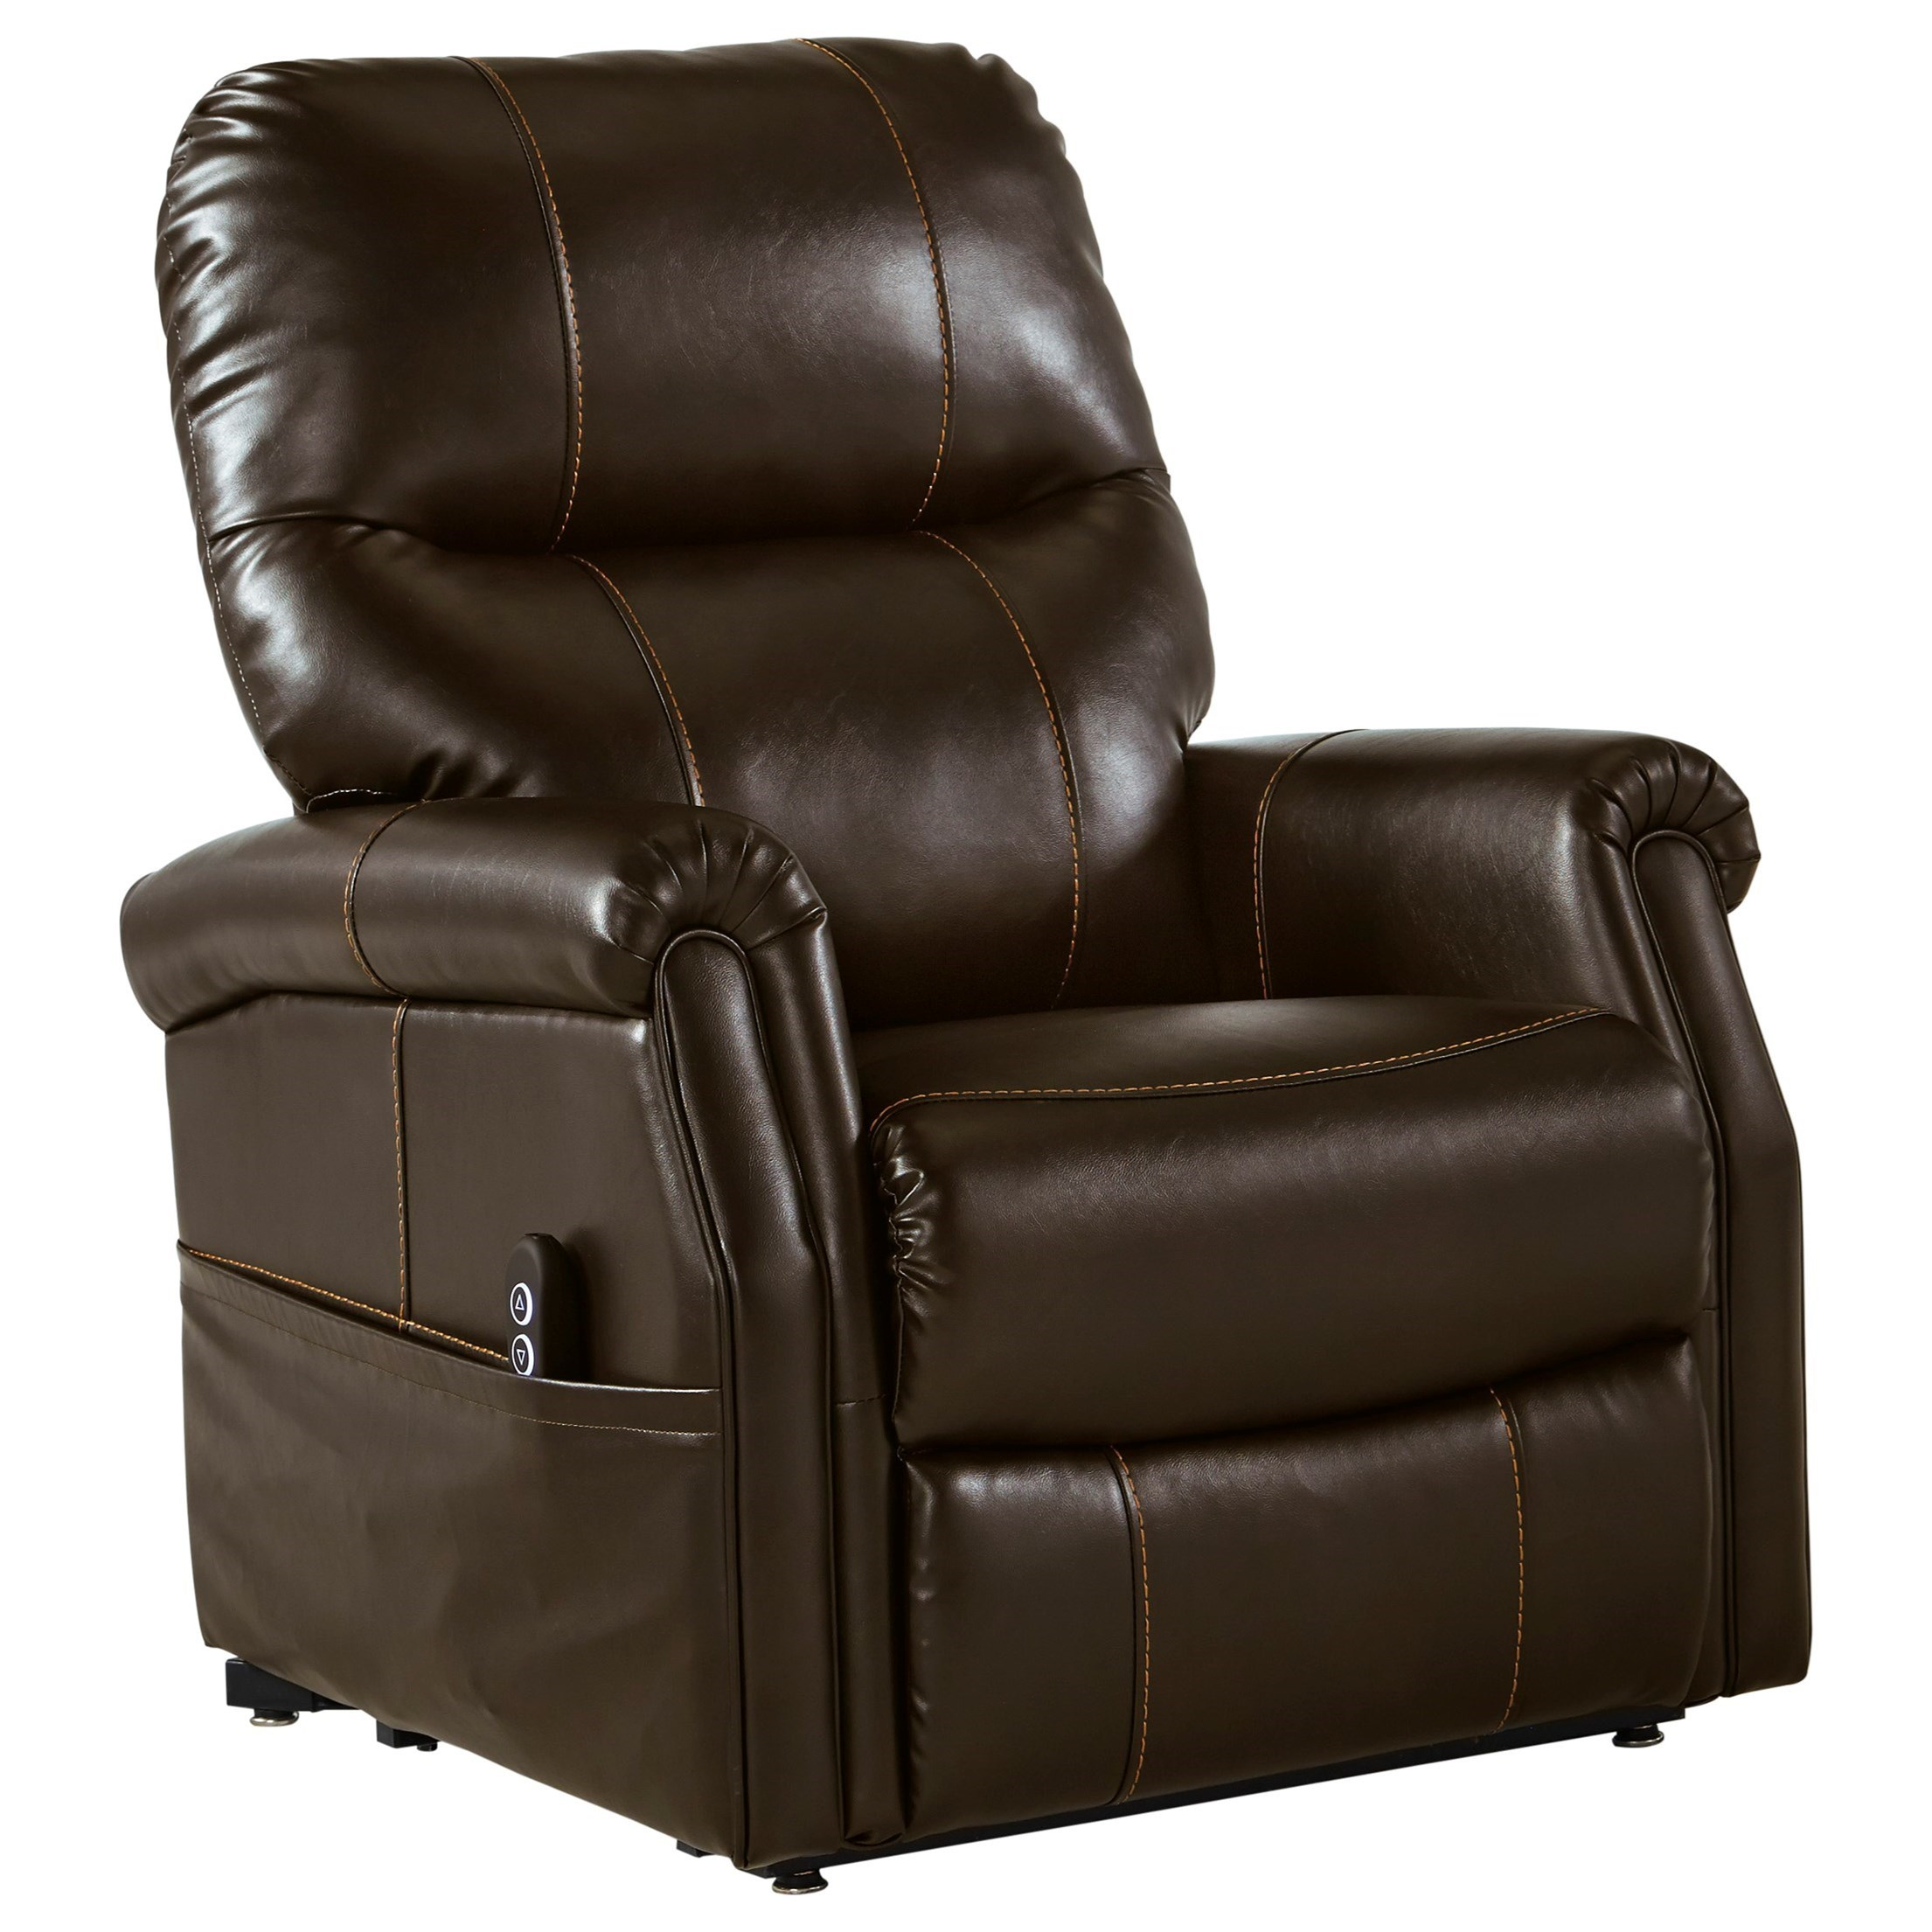 Markridge Power Lift Recliner by Signature Design by Ashley at Beck's Furniture